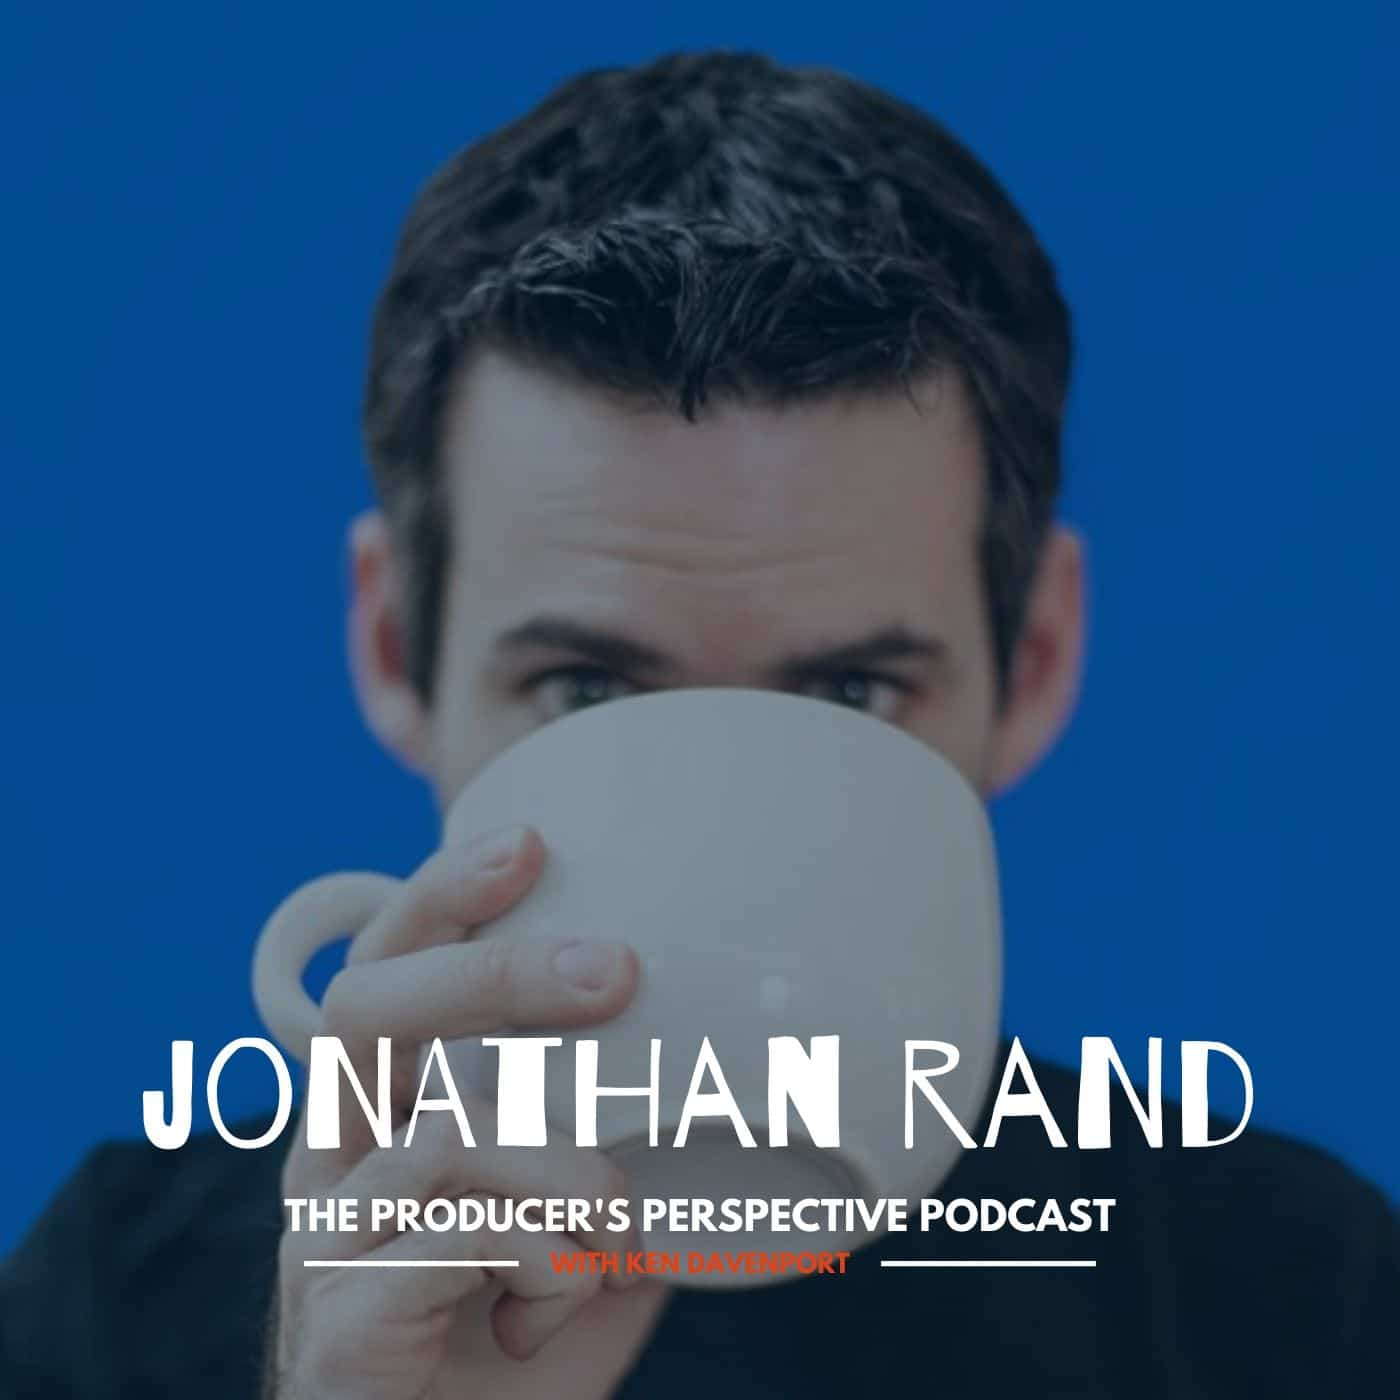 Ken Davenport's The Producer's Perspective Podcast Episode 133 - Jonathan Rand